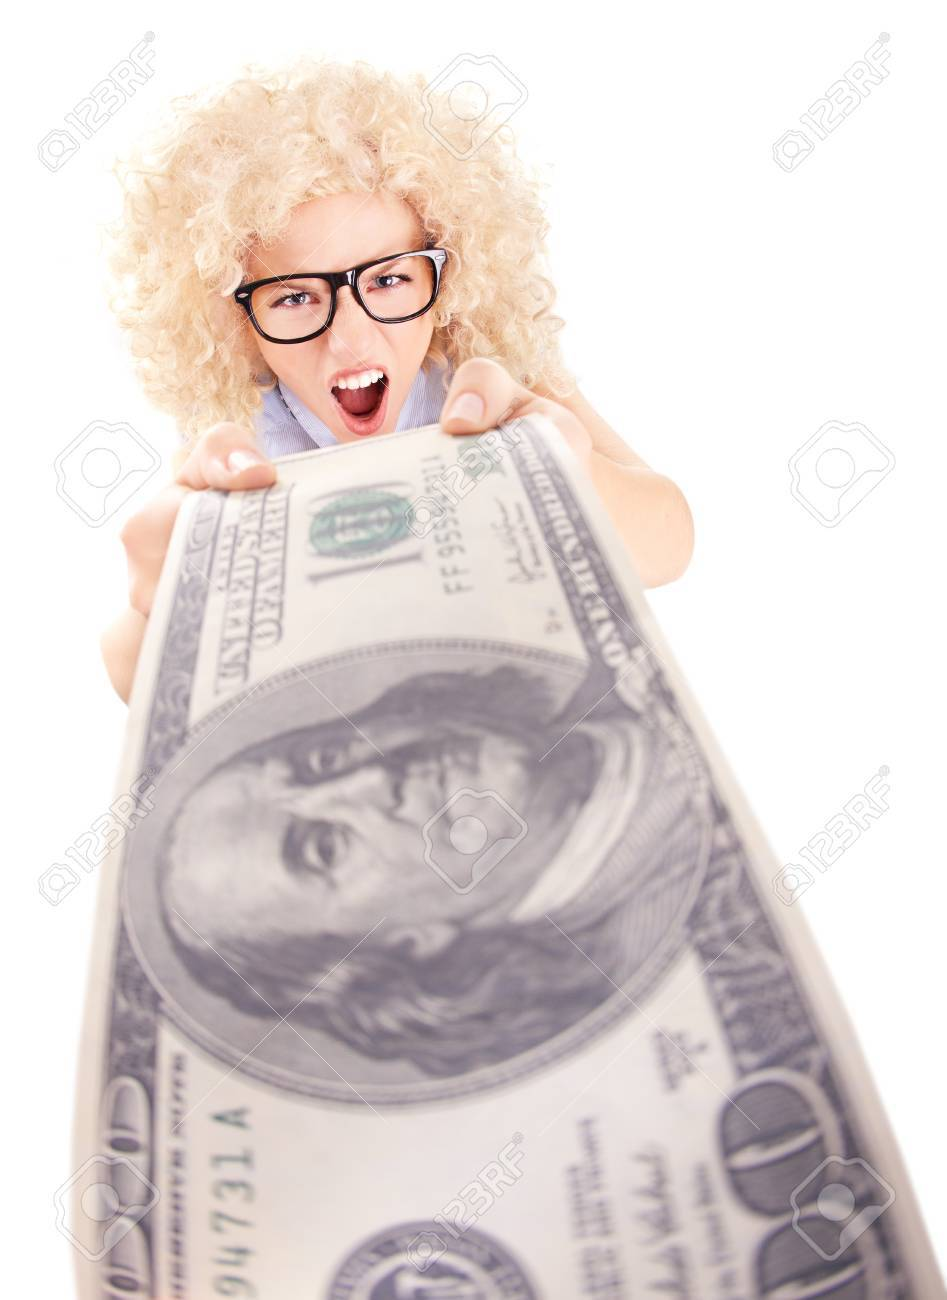 Angry woman holding hundred dollar bill Stock Photo - 16336446